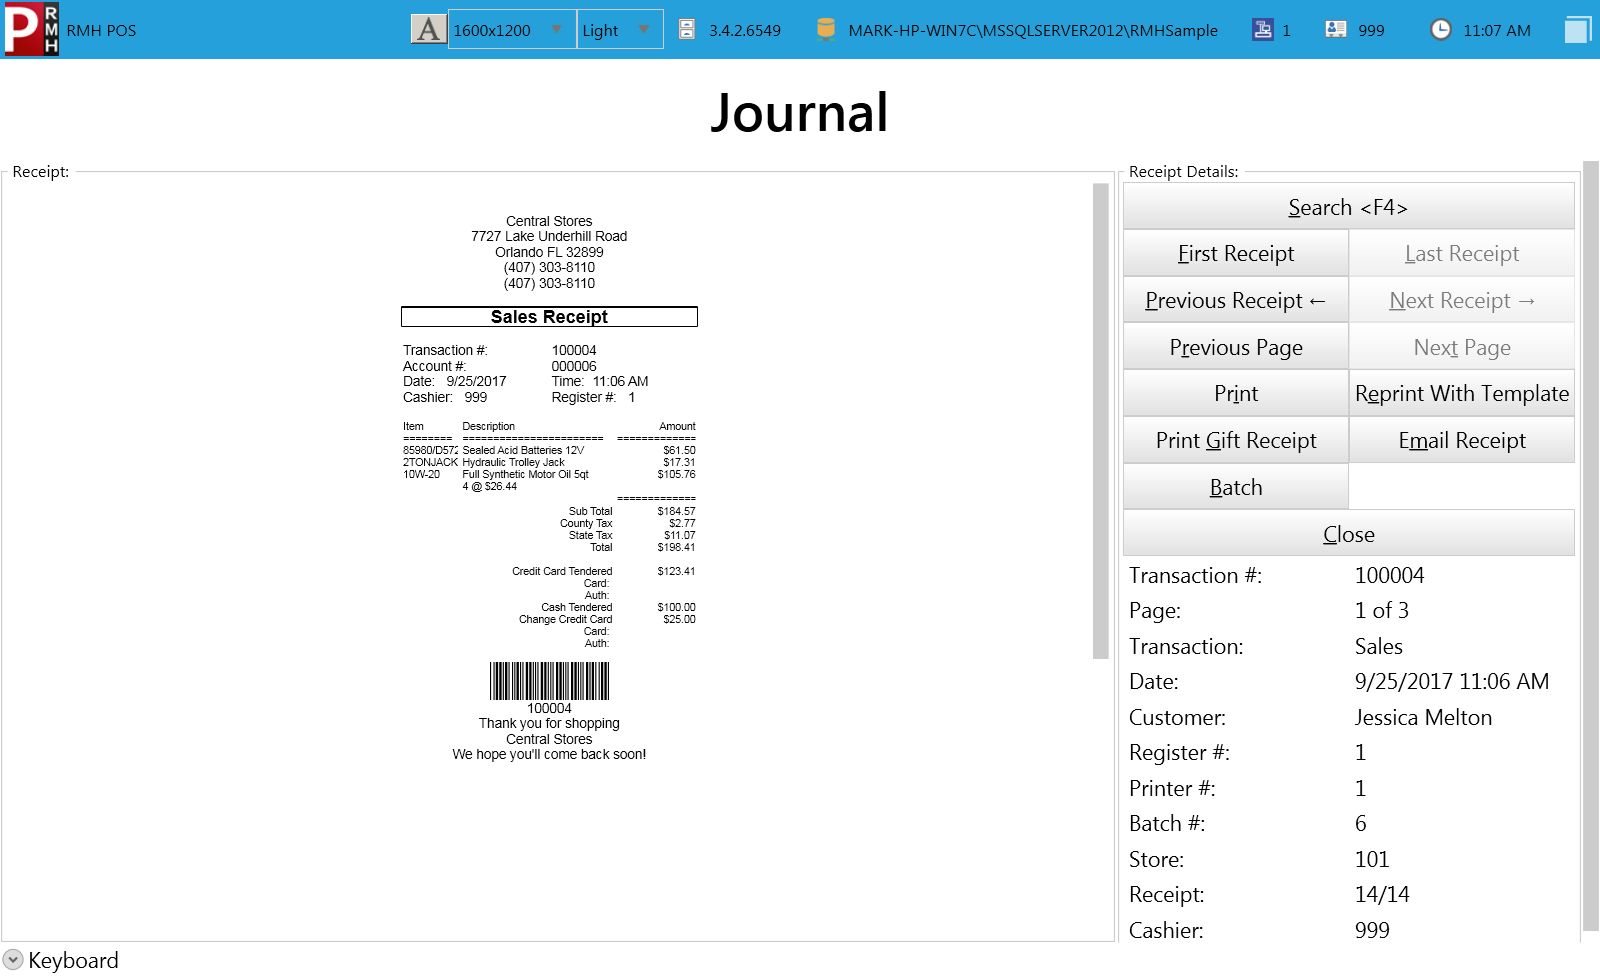 POS journal